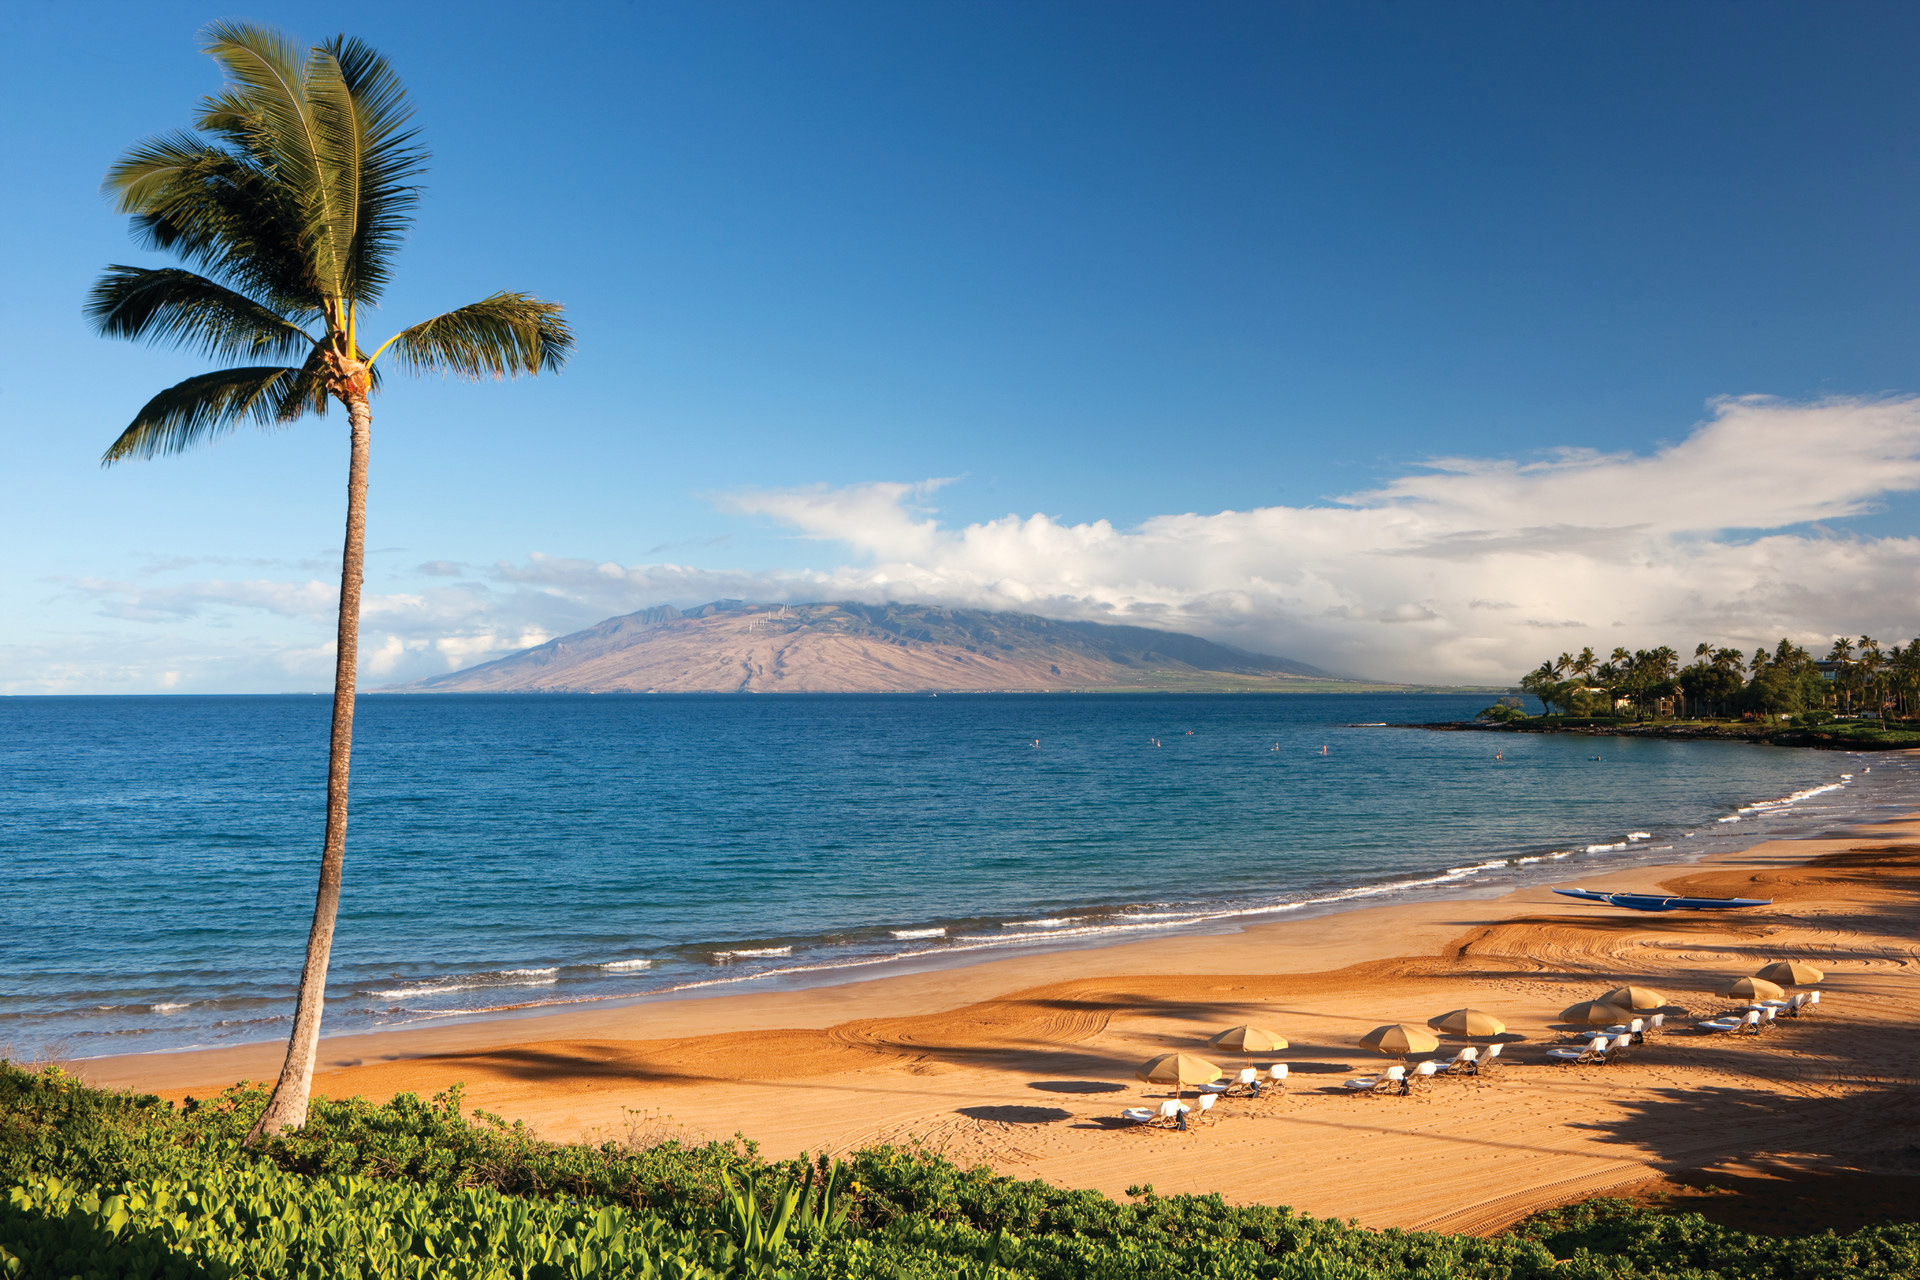 Maui: Where to Stay